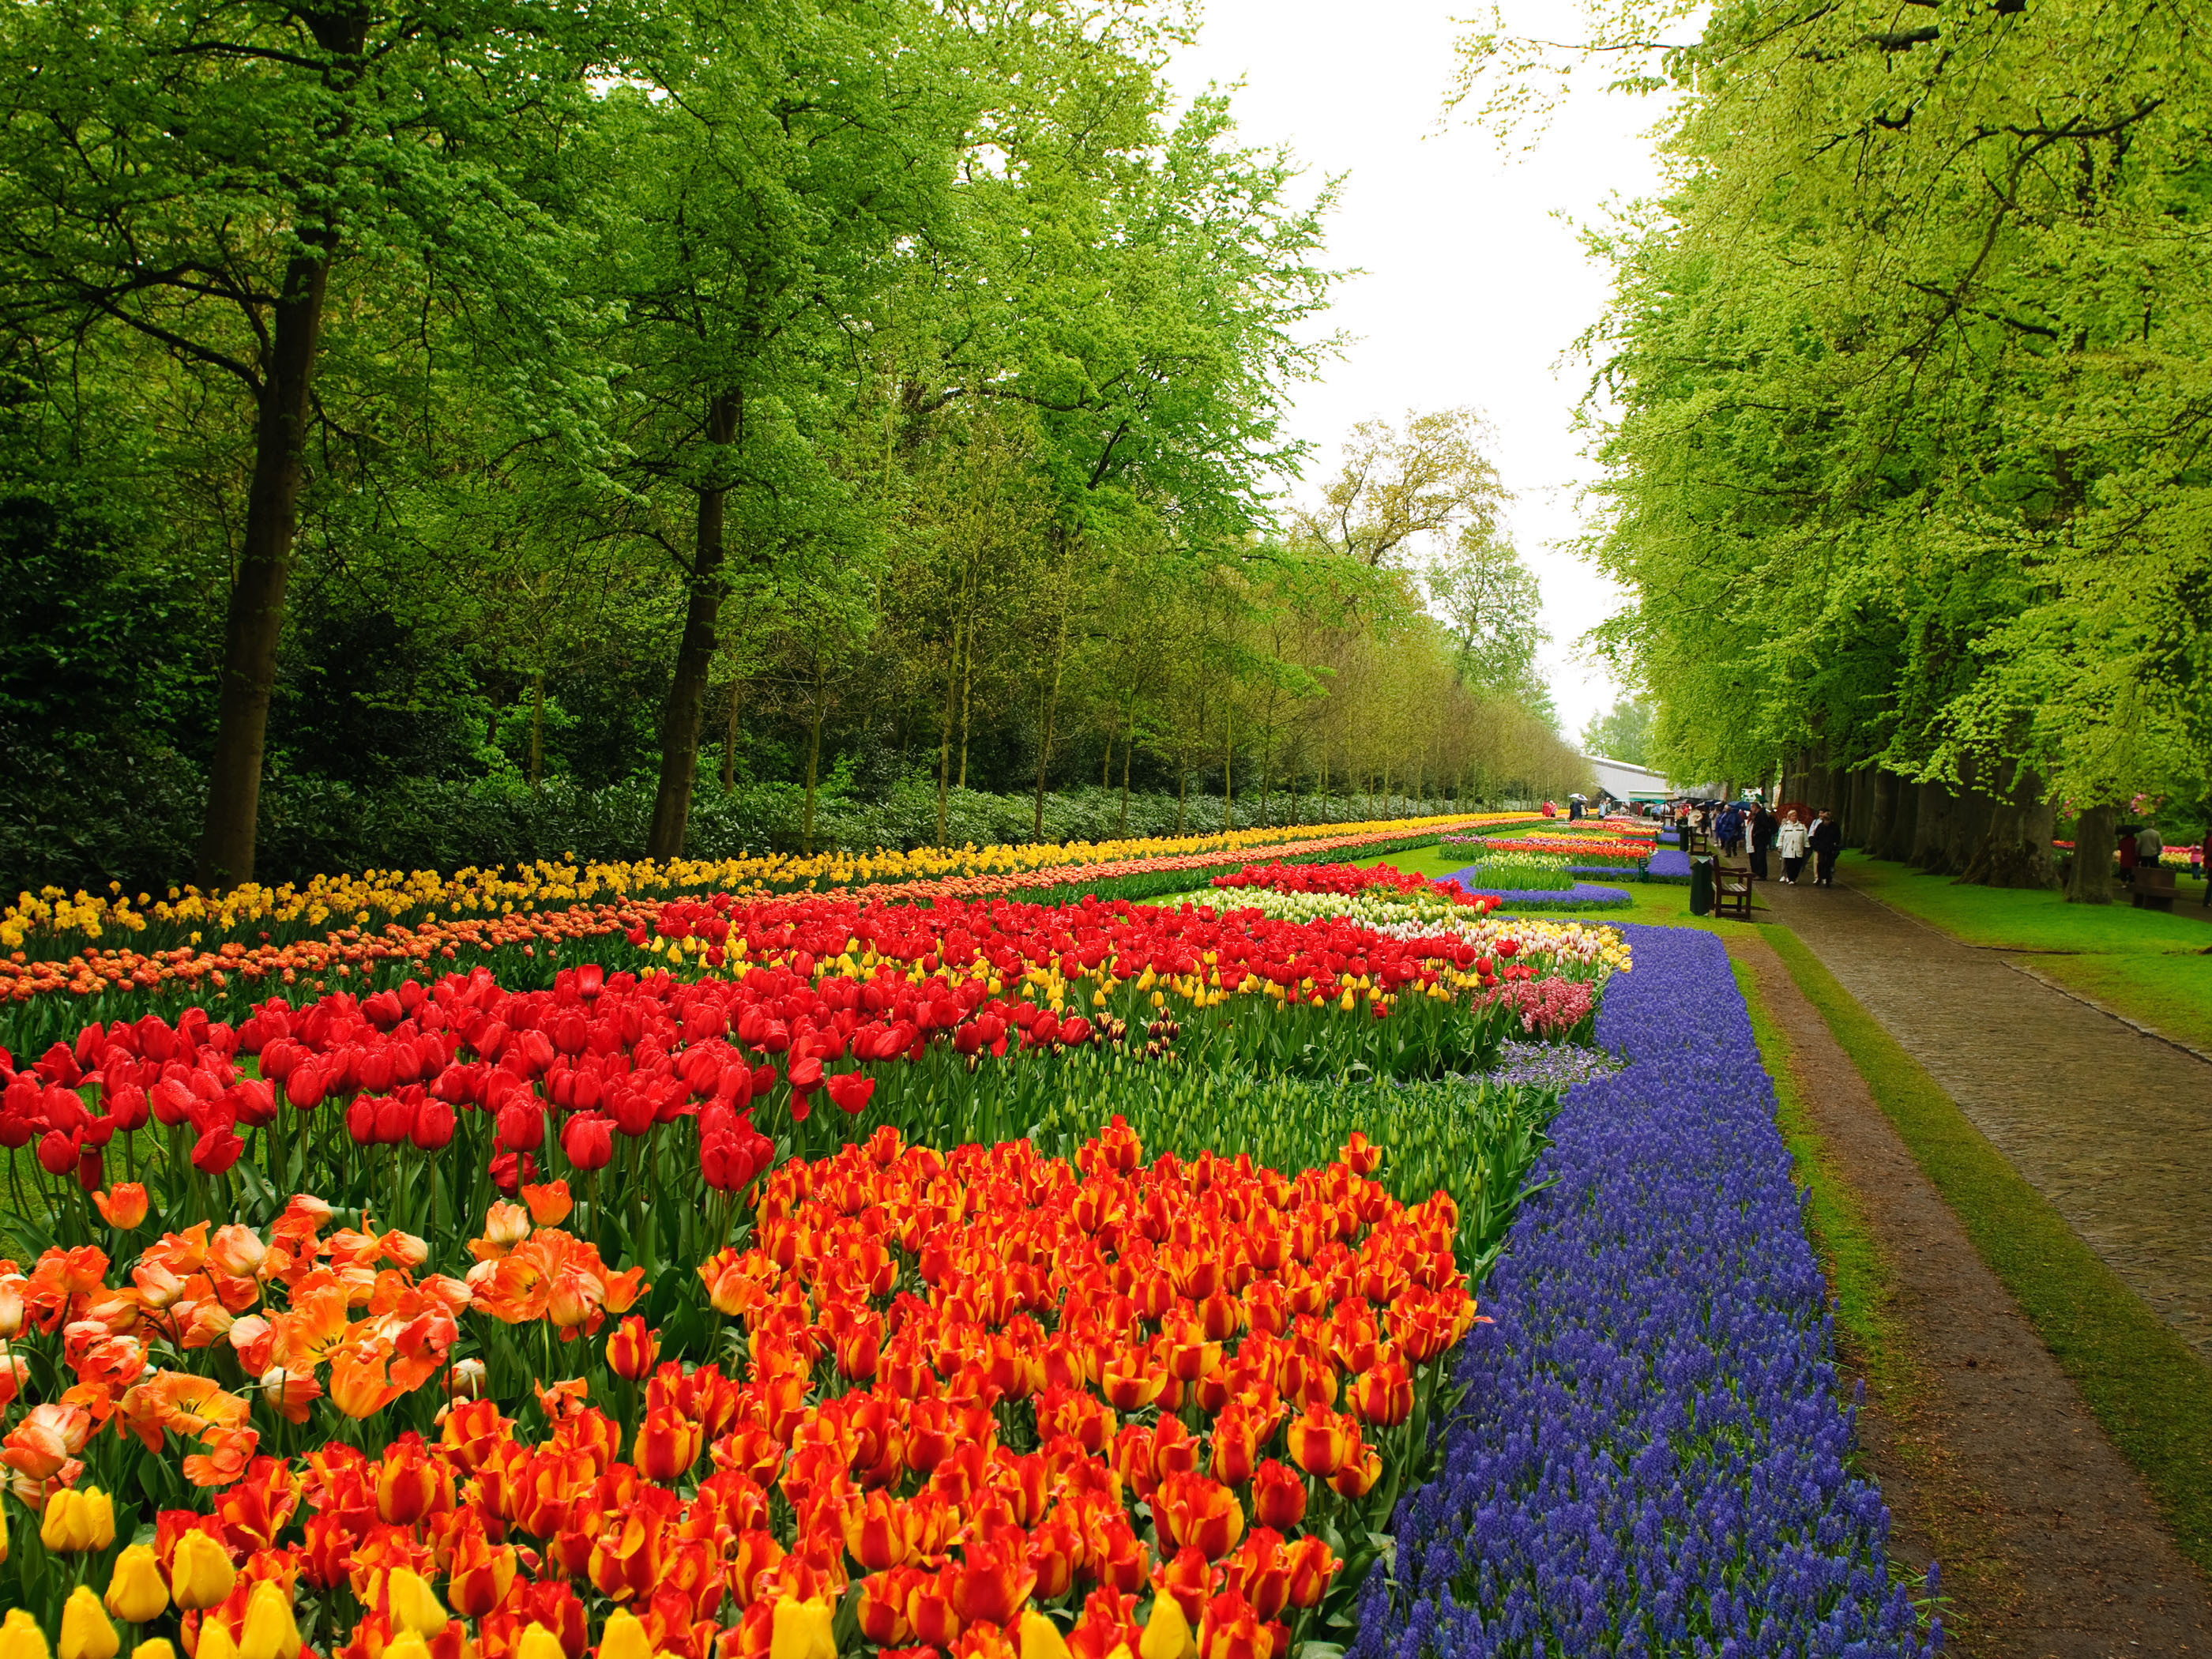 2800x2100 flower gardens pictures | Niederlande Keukenhof Flower Garden wallpapers